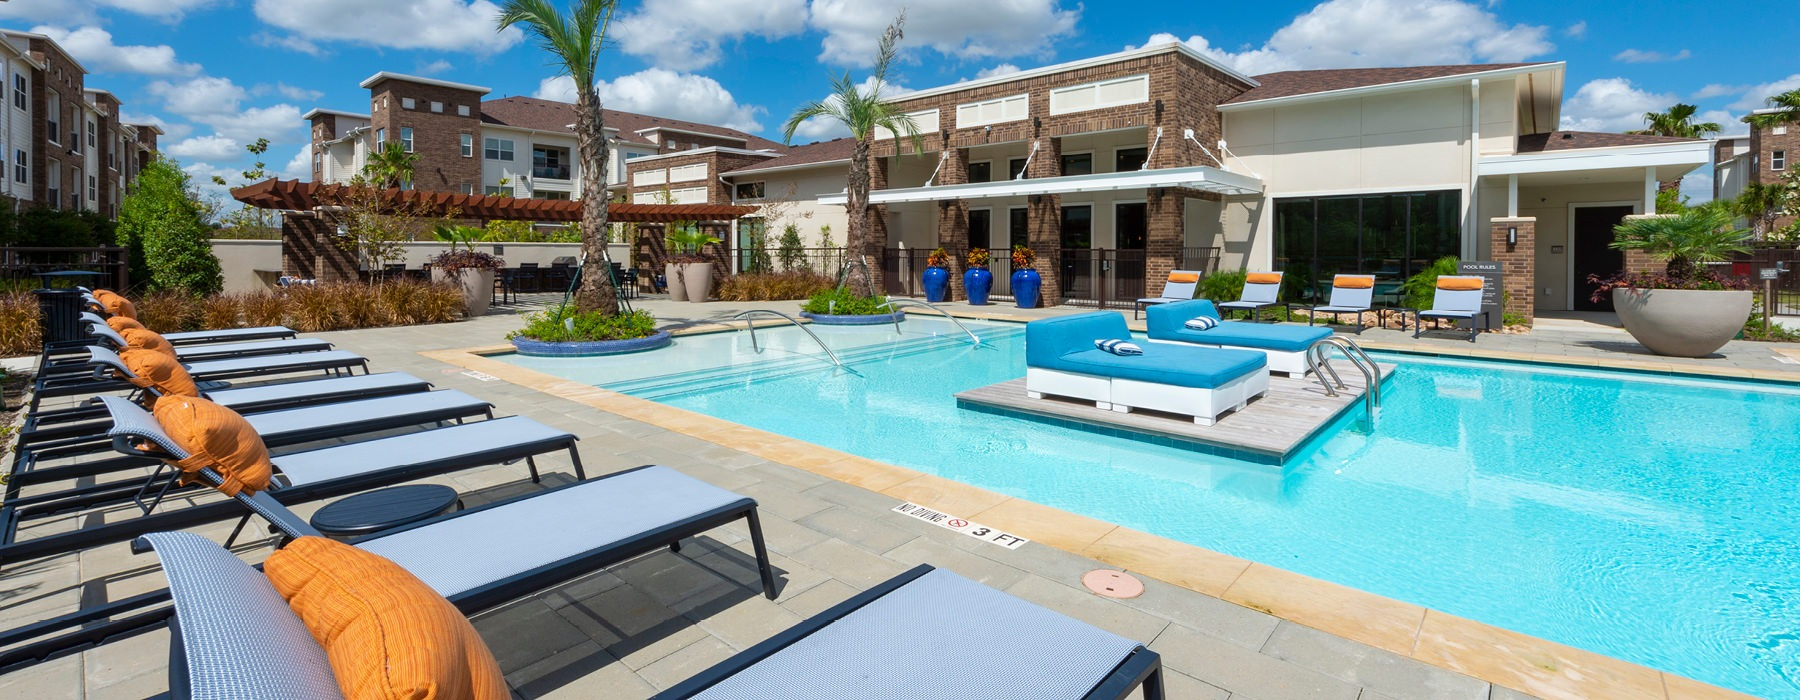 rendering of resort style pool with sundeck